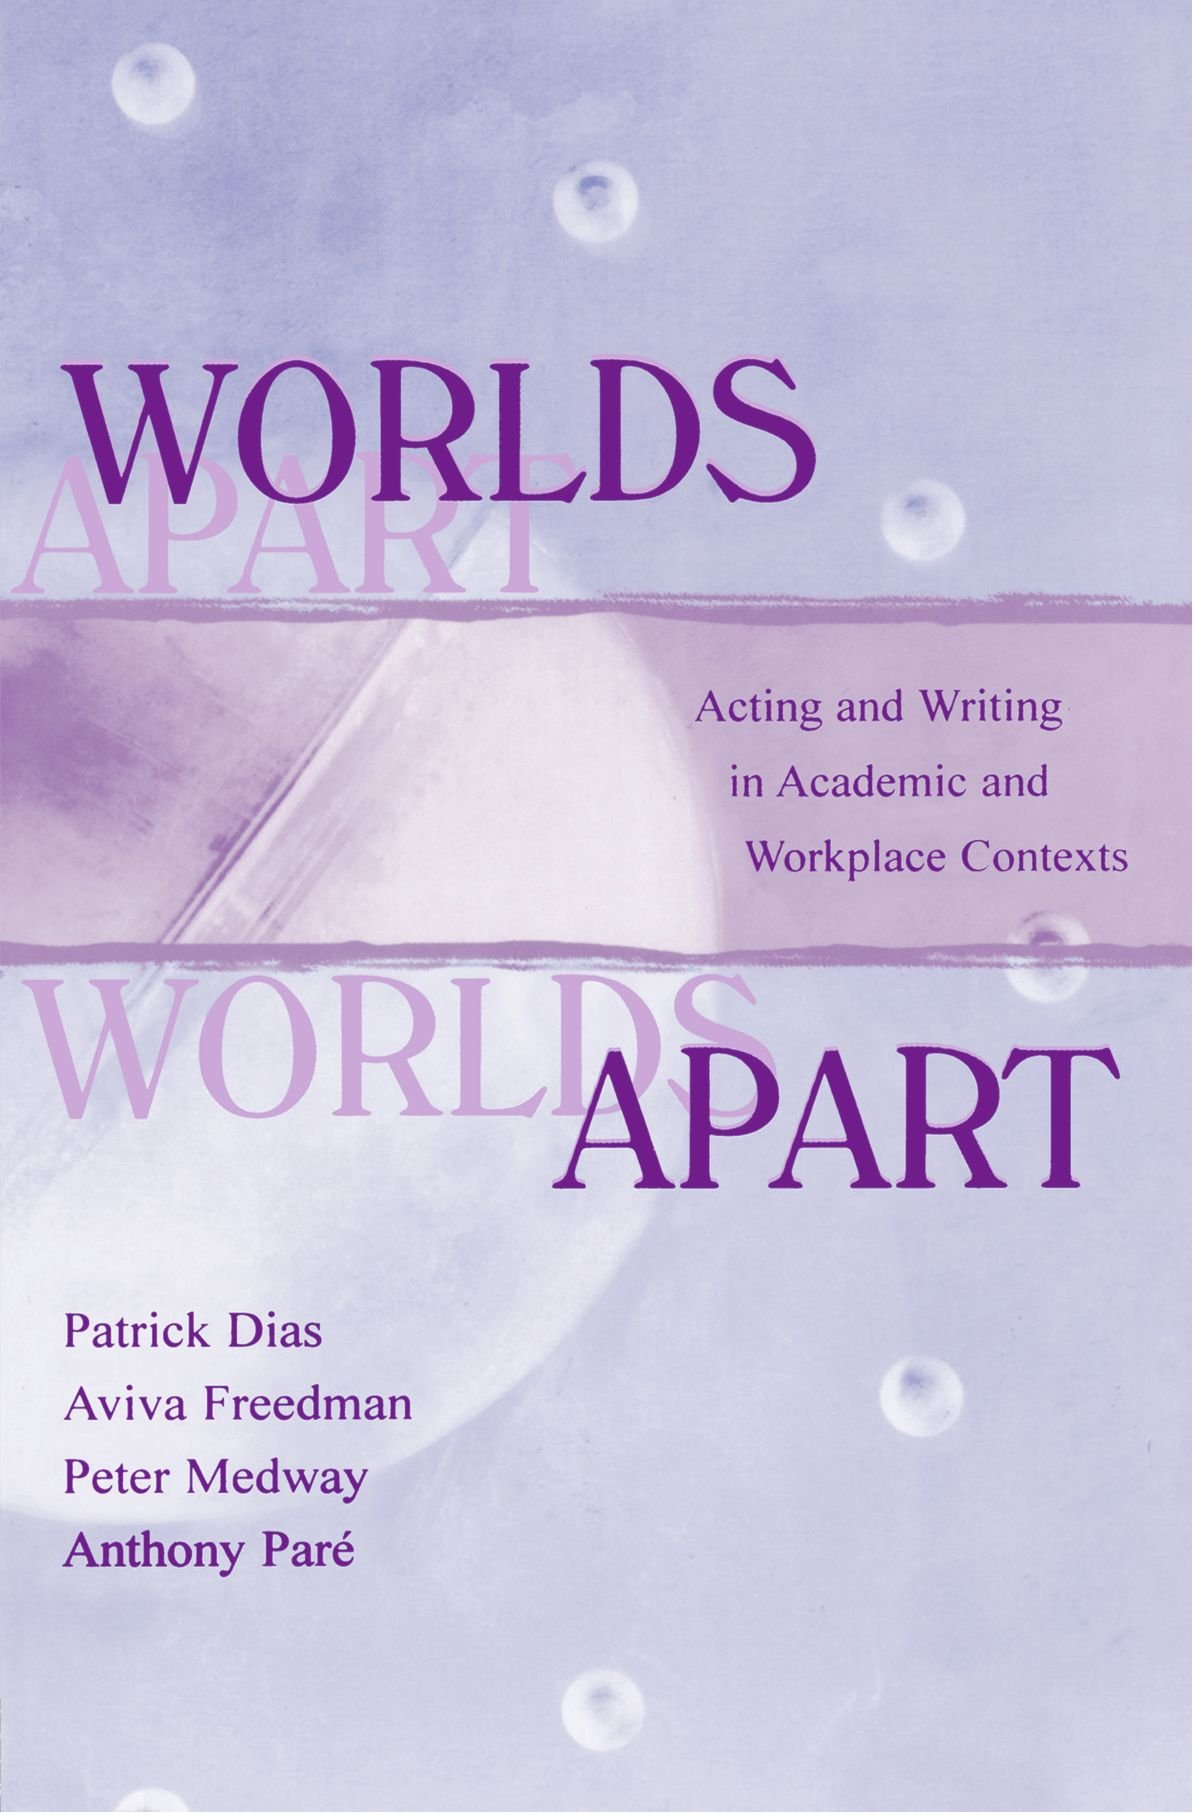 Worlds Apart: Acting and Writing in Academic and Workplace Contexts (Rhetoric, Knowledge, and Society Series) by Brand: Routledge